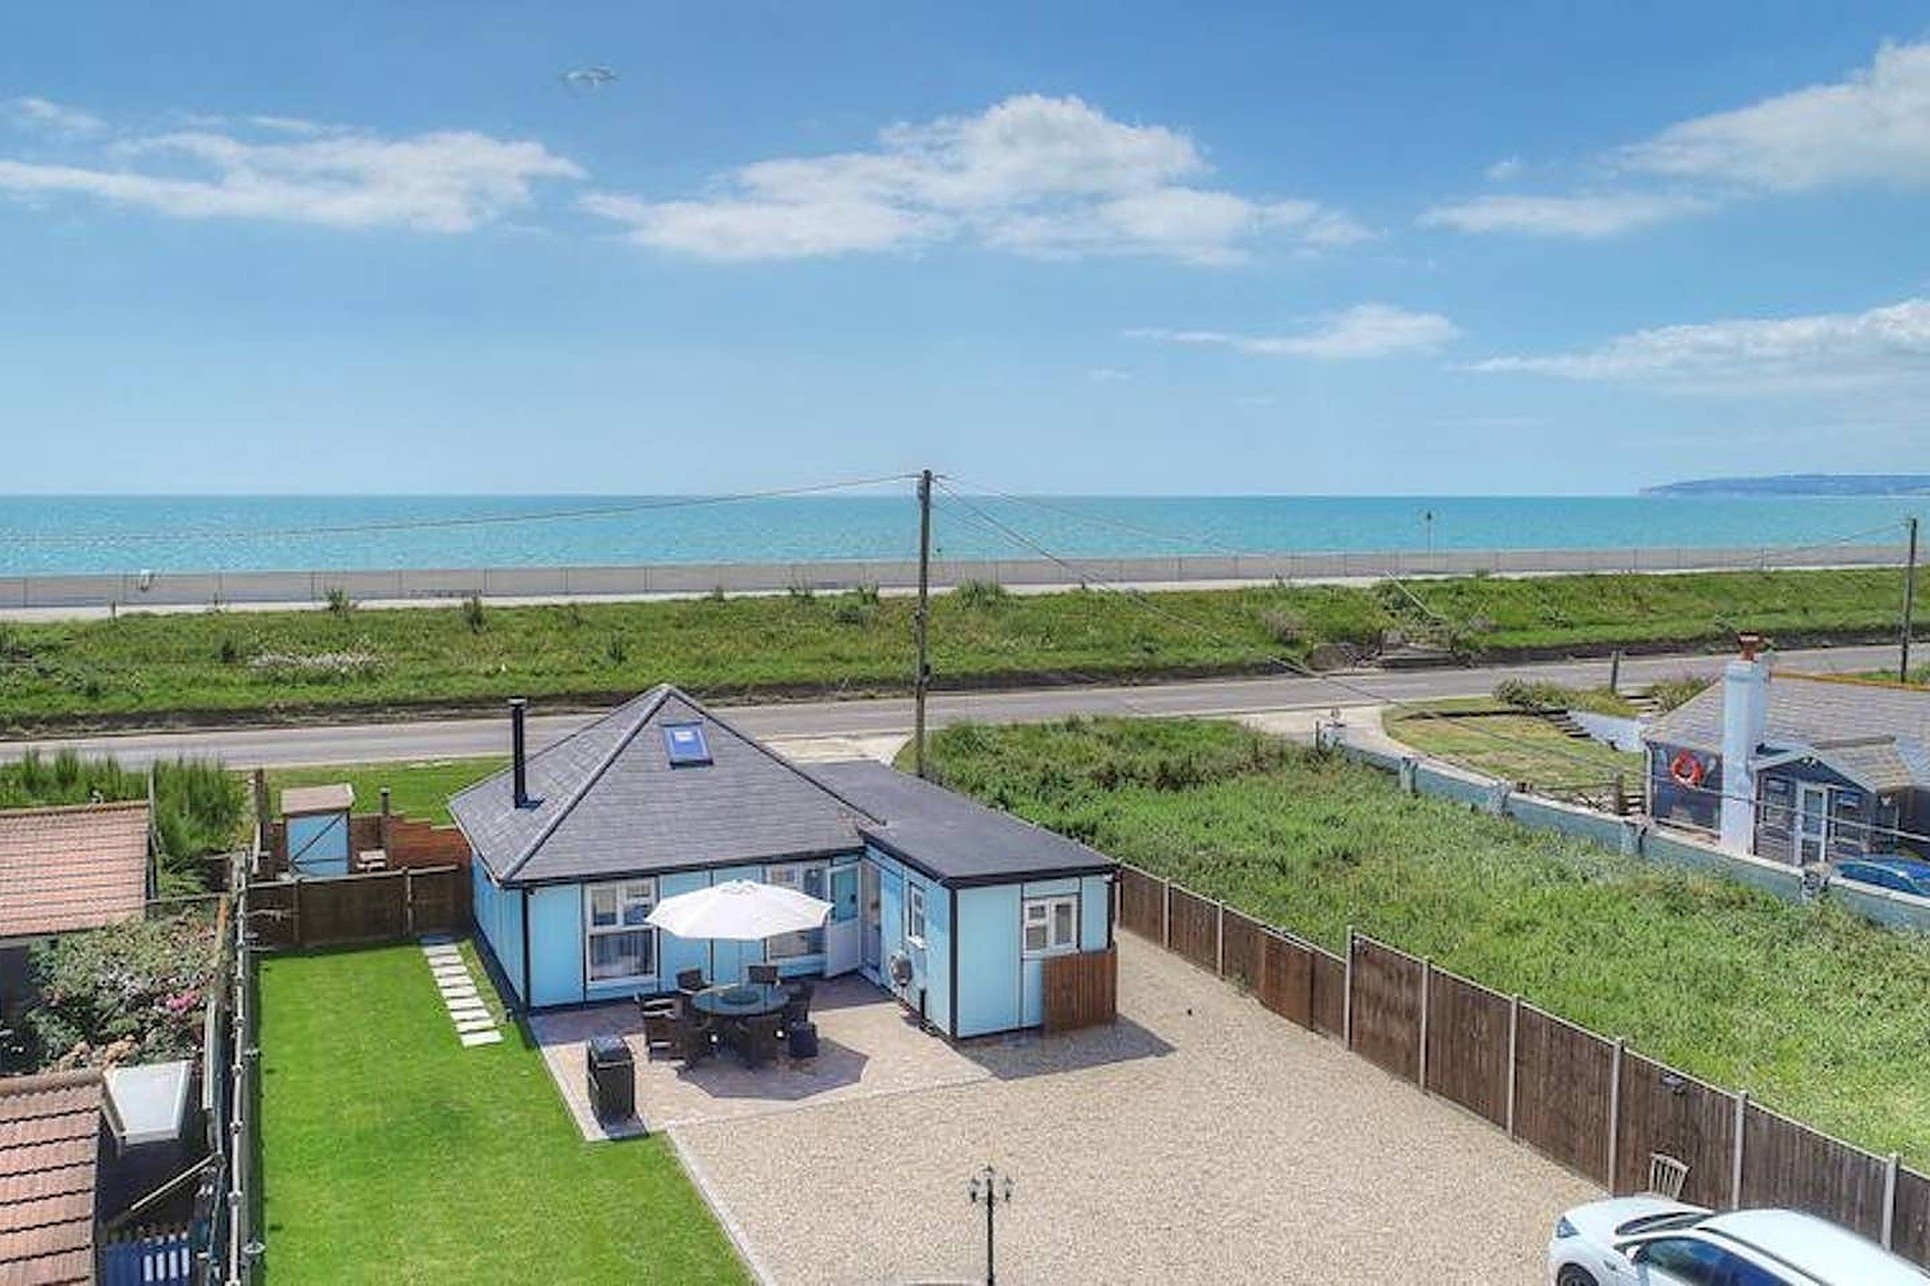 Apartment 2 Bed Cottage Beside the Beach photo 28485480